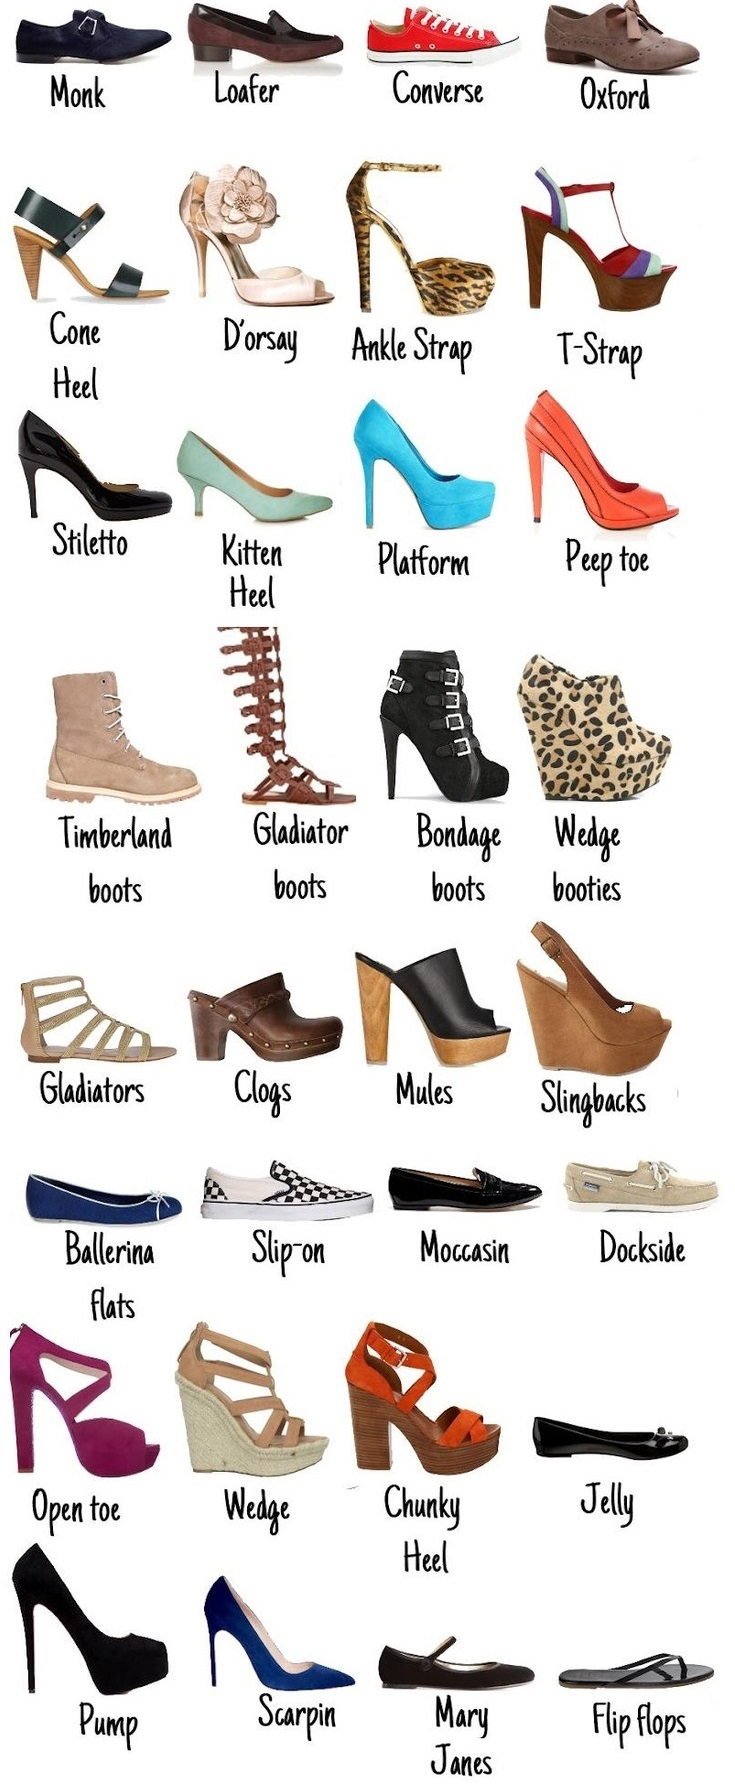 The Visual Shoe Dictionary – Online Shopping Help ...